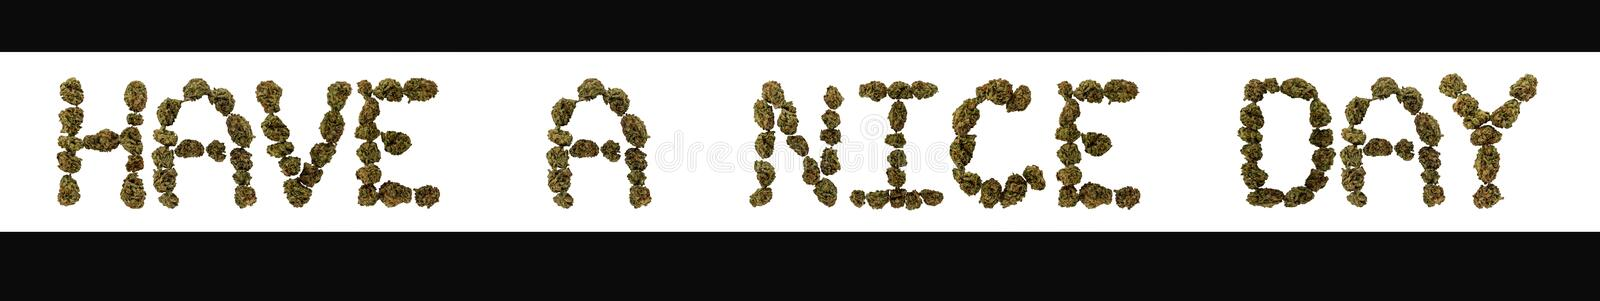 The phrase have a nice day written in large marijuana buds. vector illustration